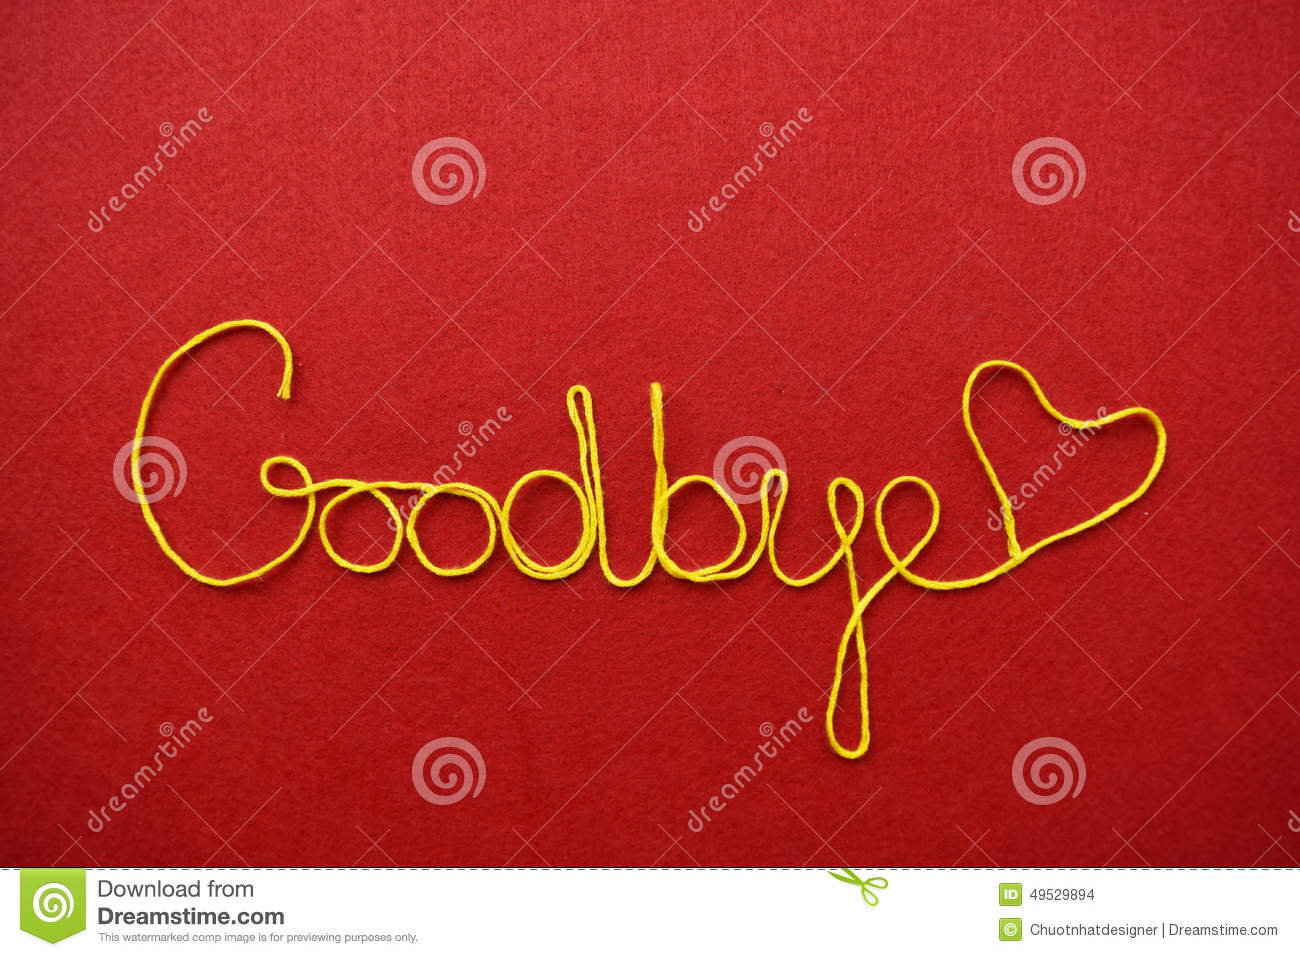 Goodbye Ribbon Greeting And Hearts On Red Background Stock Photo